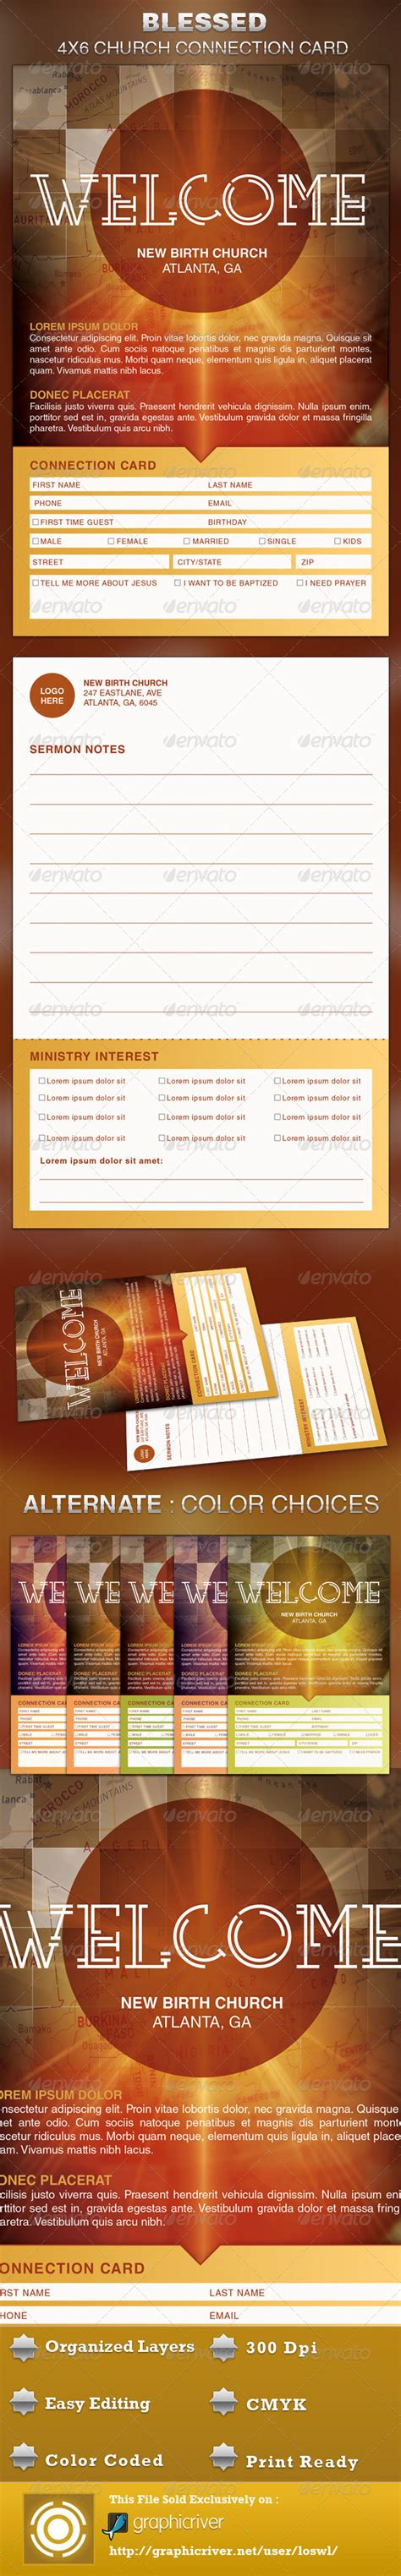 youth connection card template blessed church connection card template graphicriver